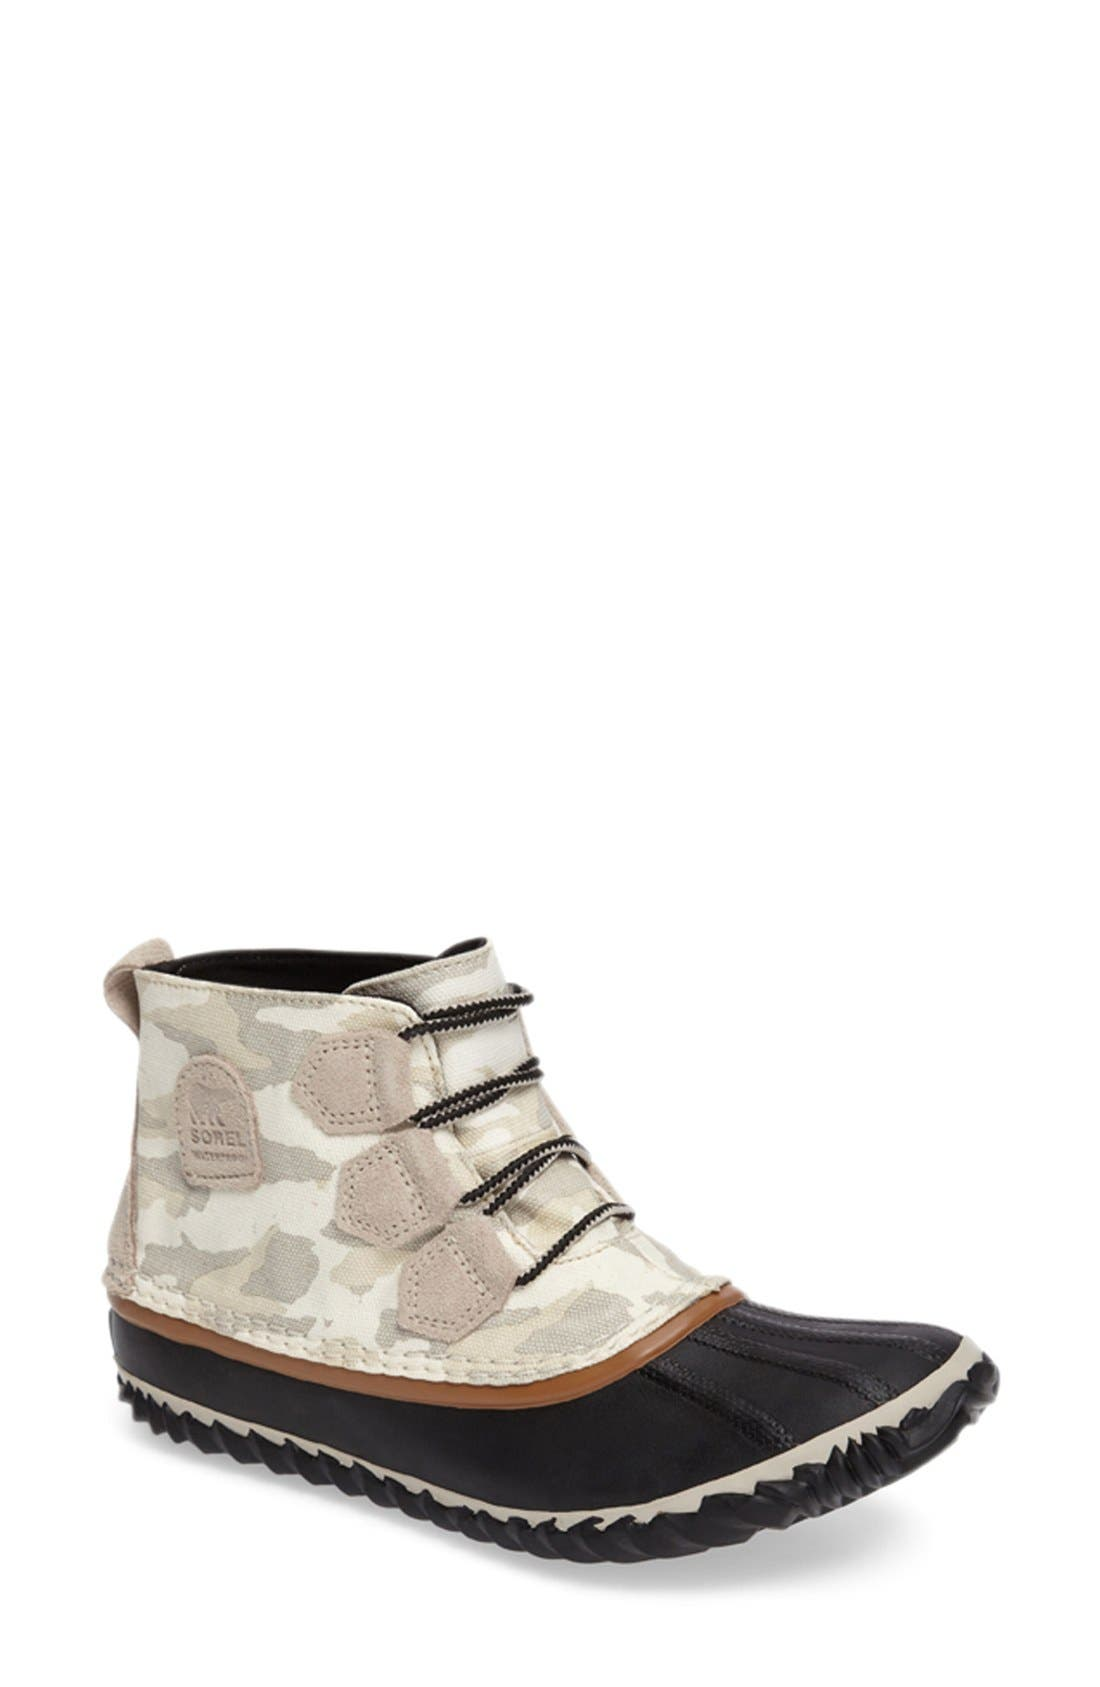 Alternate Image 1 Selected - SOREL Out 'n' About Waterproof Duck Boot (Women)